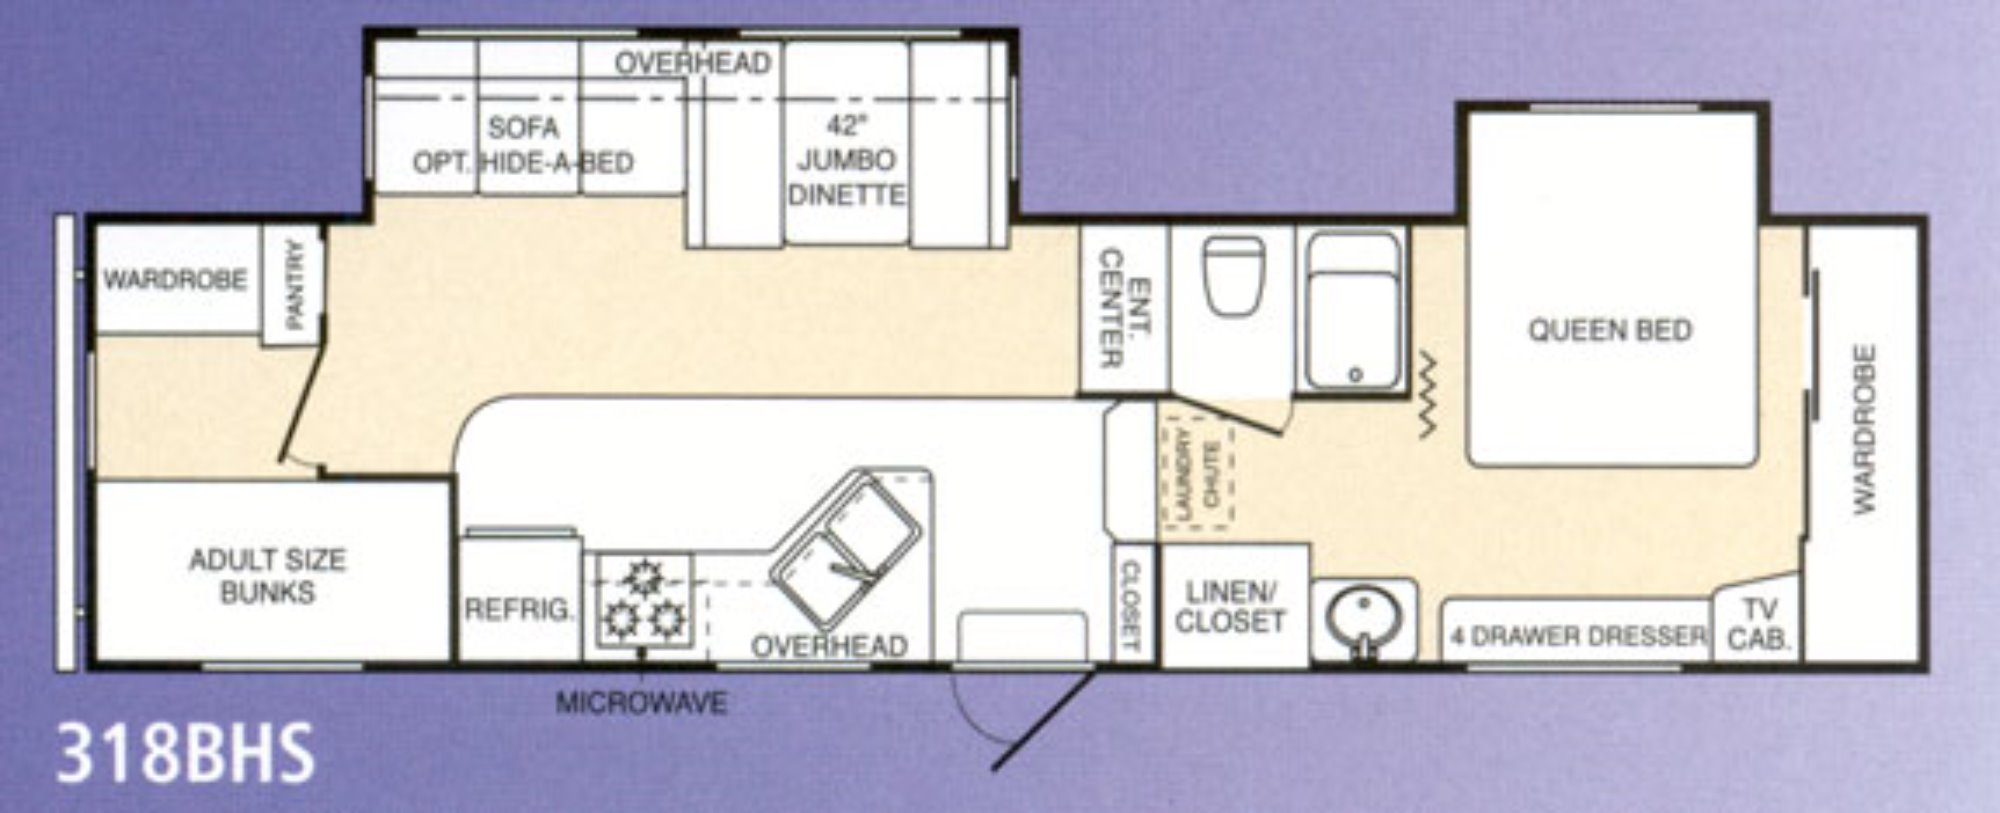 Open Road Fifth Wheel Floor Plans: 2004 Keystone Montana 318bhs